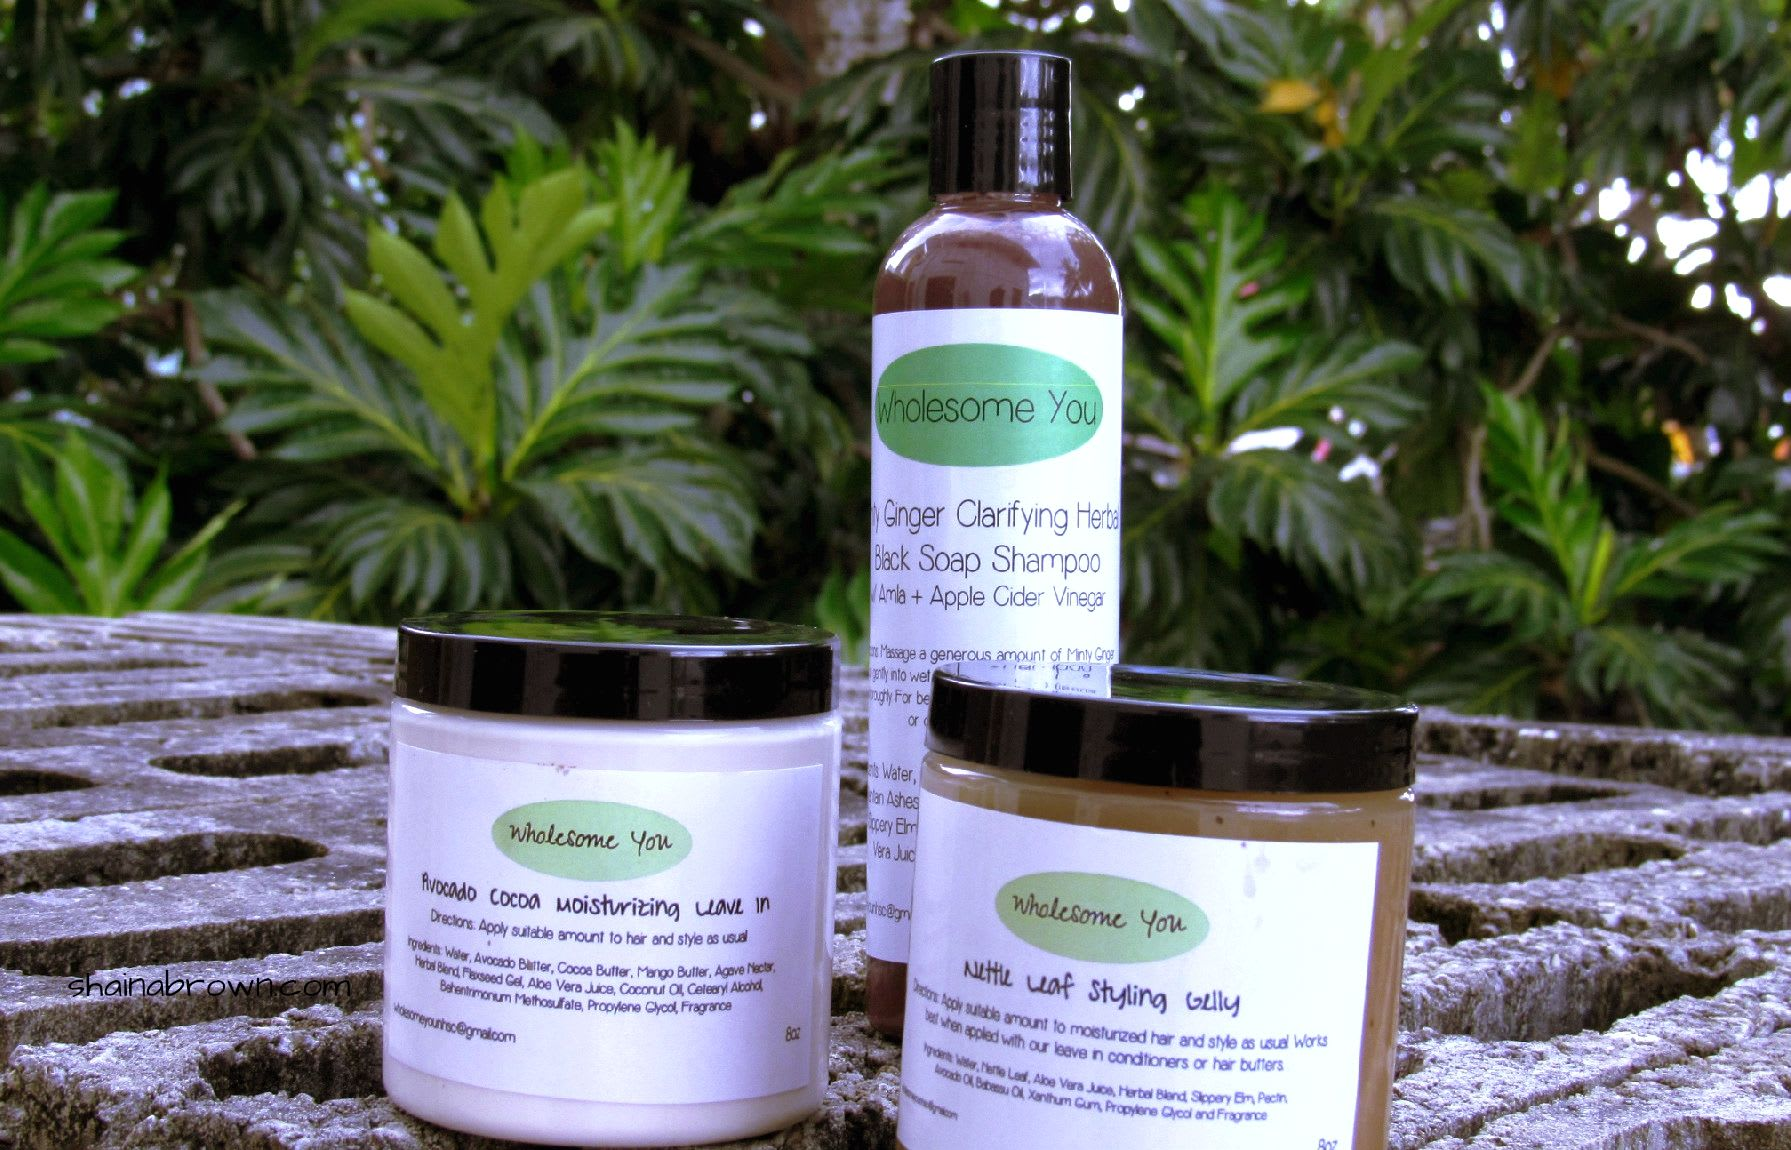 Wholesome You Hair Products - Review